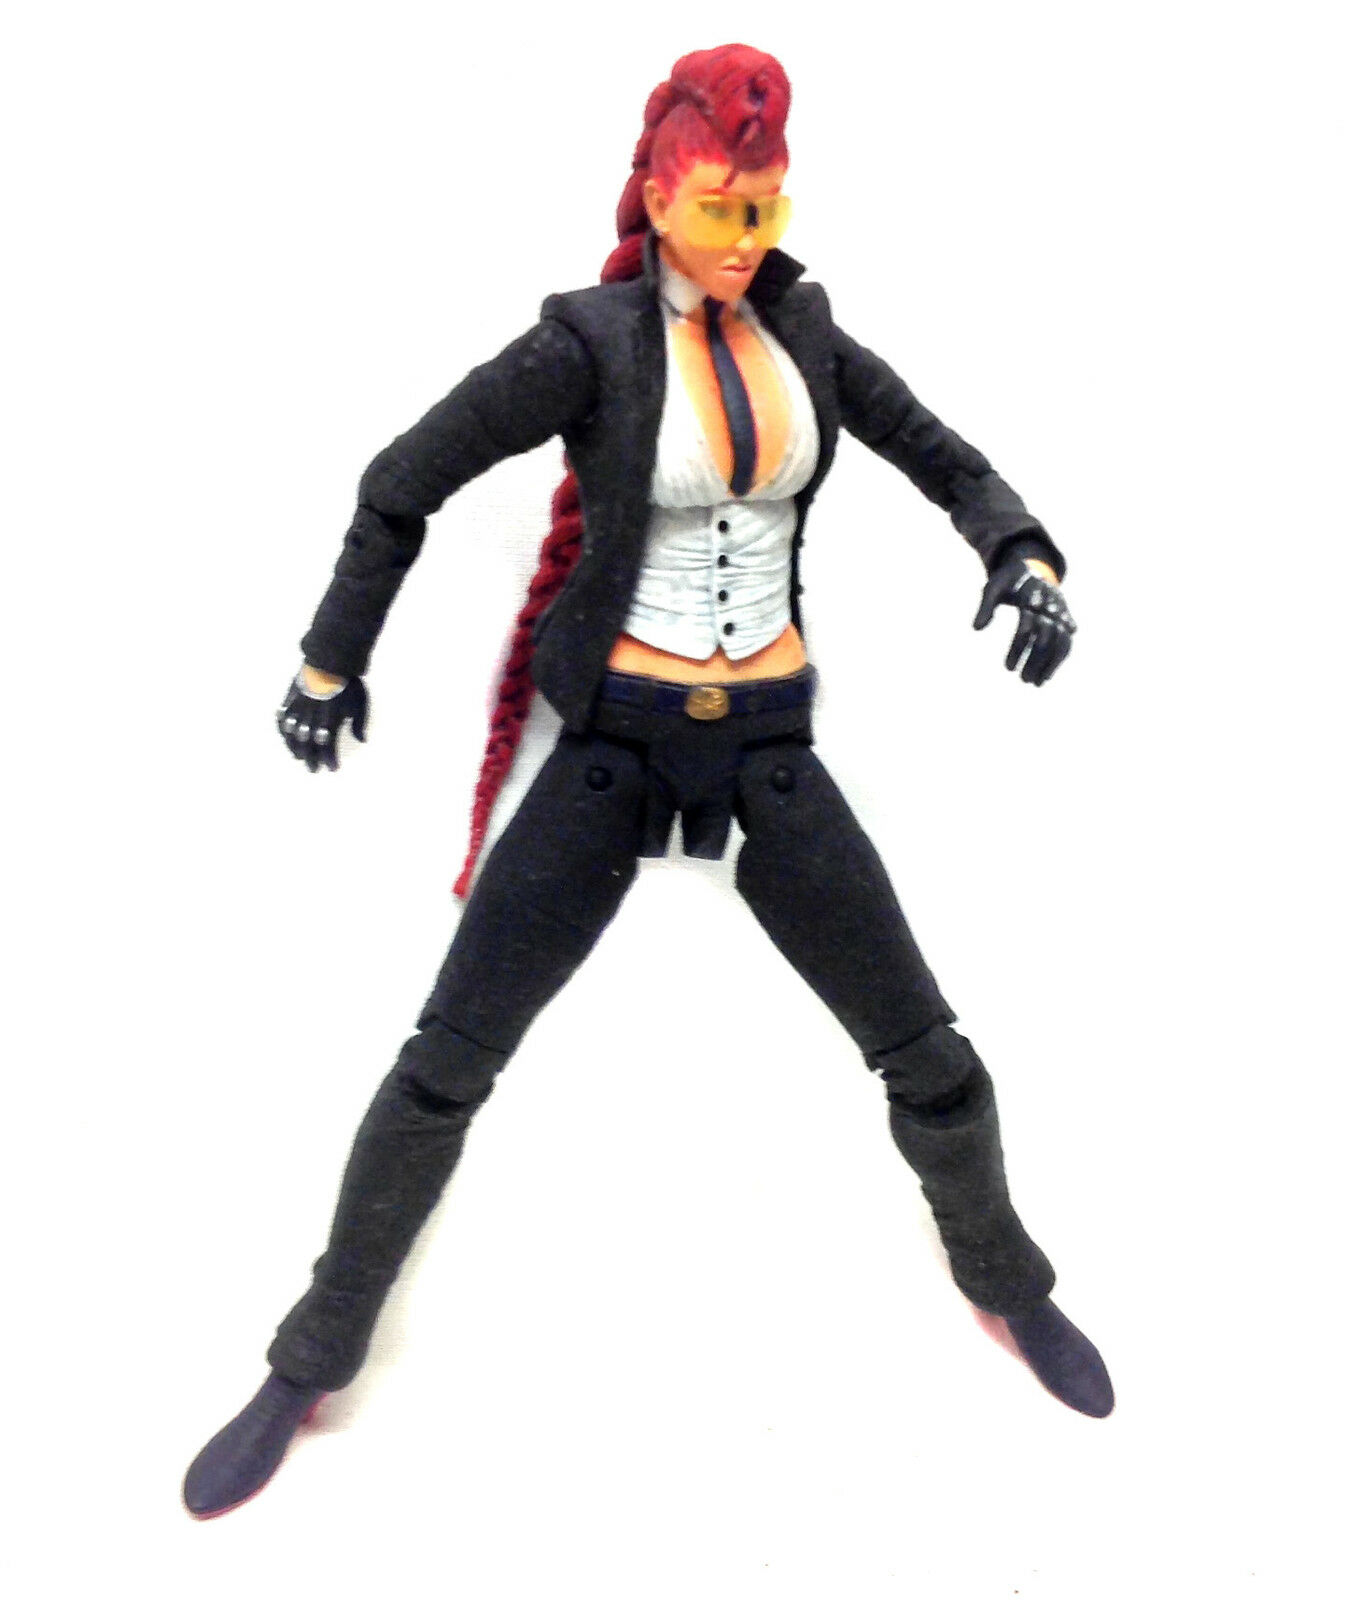 CAPCOM Games STREET FIGHTER  VIPER 6  video game figure, ps3, wii, x box RARE